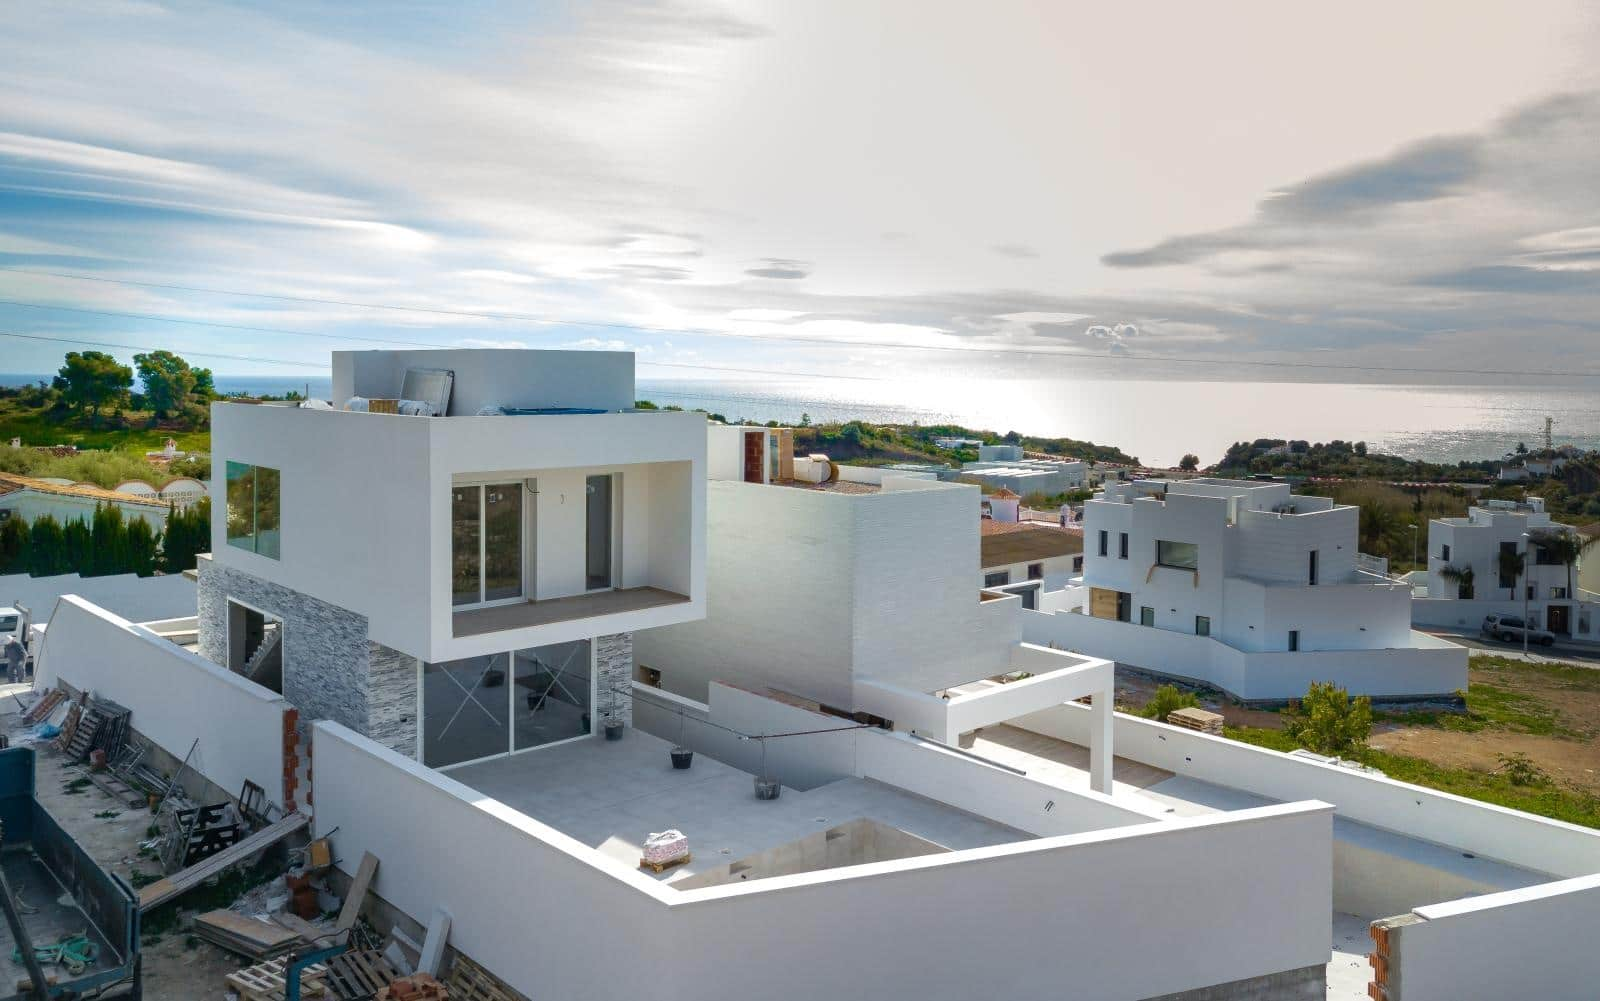 3 bedroom Villa for sale in Nerja with pool - € 490,000 (Ref: 5072496)